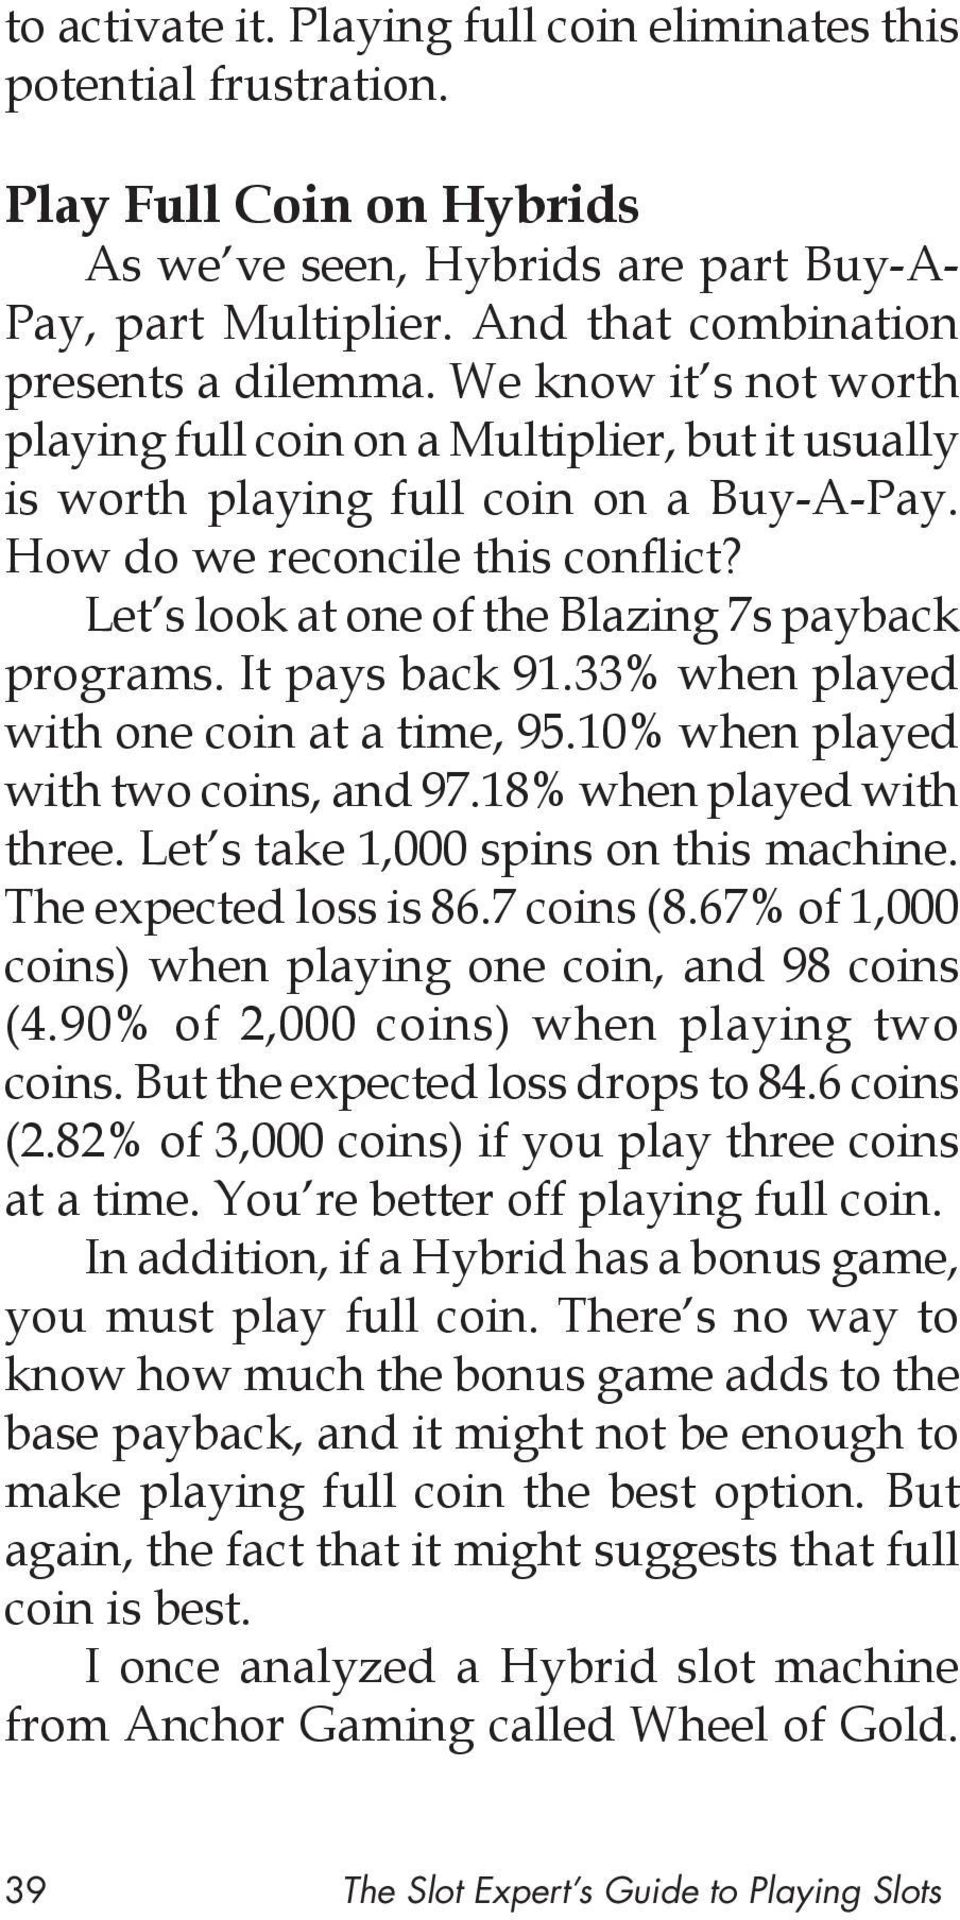 Let s look at one of the Blazing 7s payback programs. It pays back 91.33% when played with one coin at a time, 95.10% when played with two coins, and 97.18% when played with three.